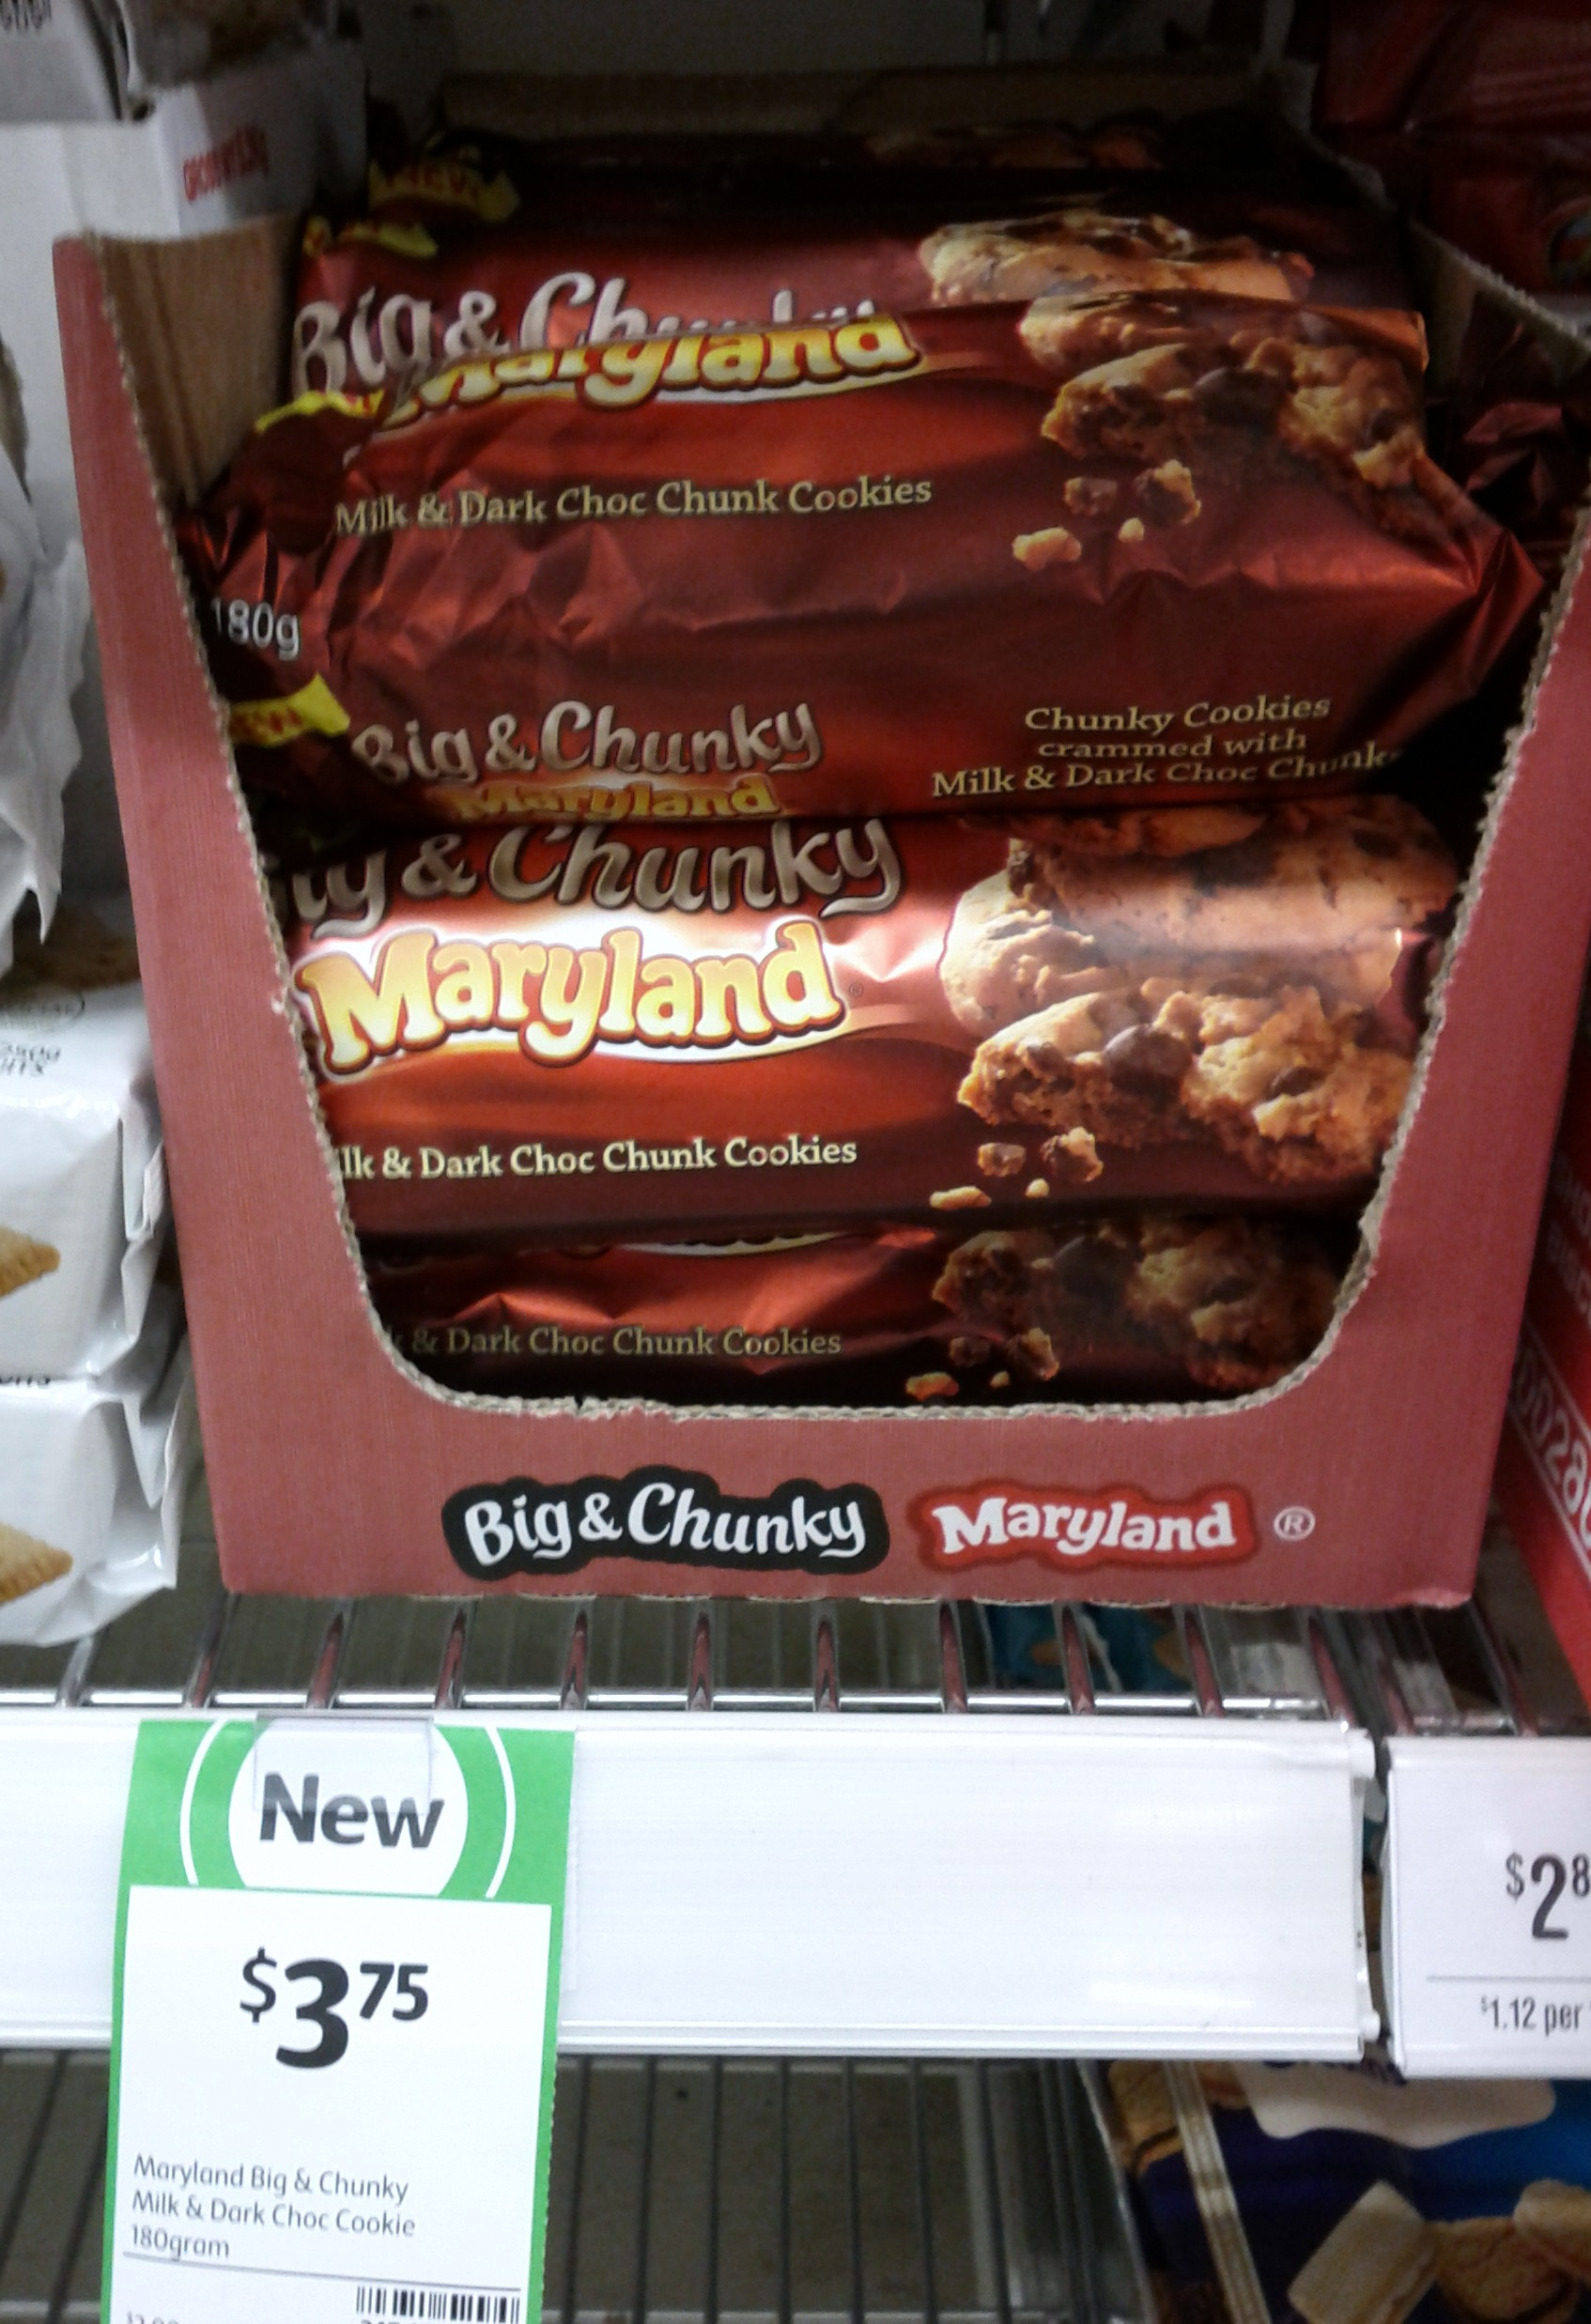 Maryland Big & Chunky 180g Milk & Dark Cookie